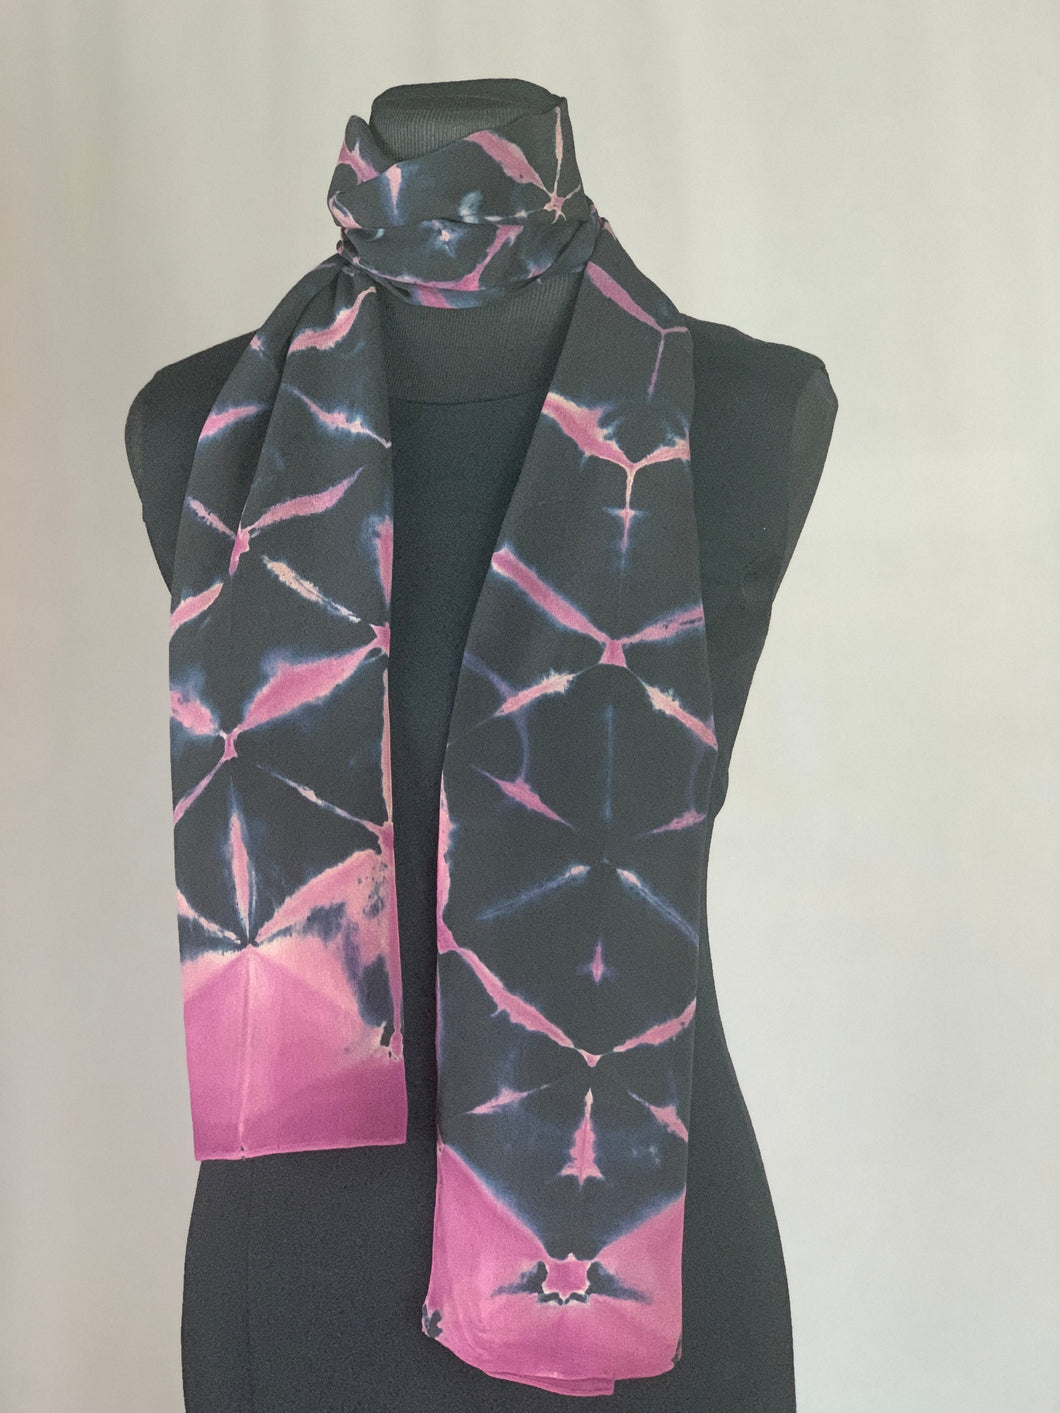 Hand Dyed Silk Shibori Scarf - Plum, Dark Blue and Black